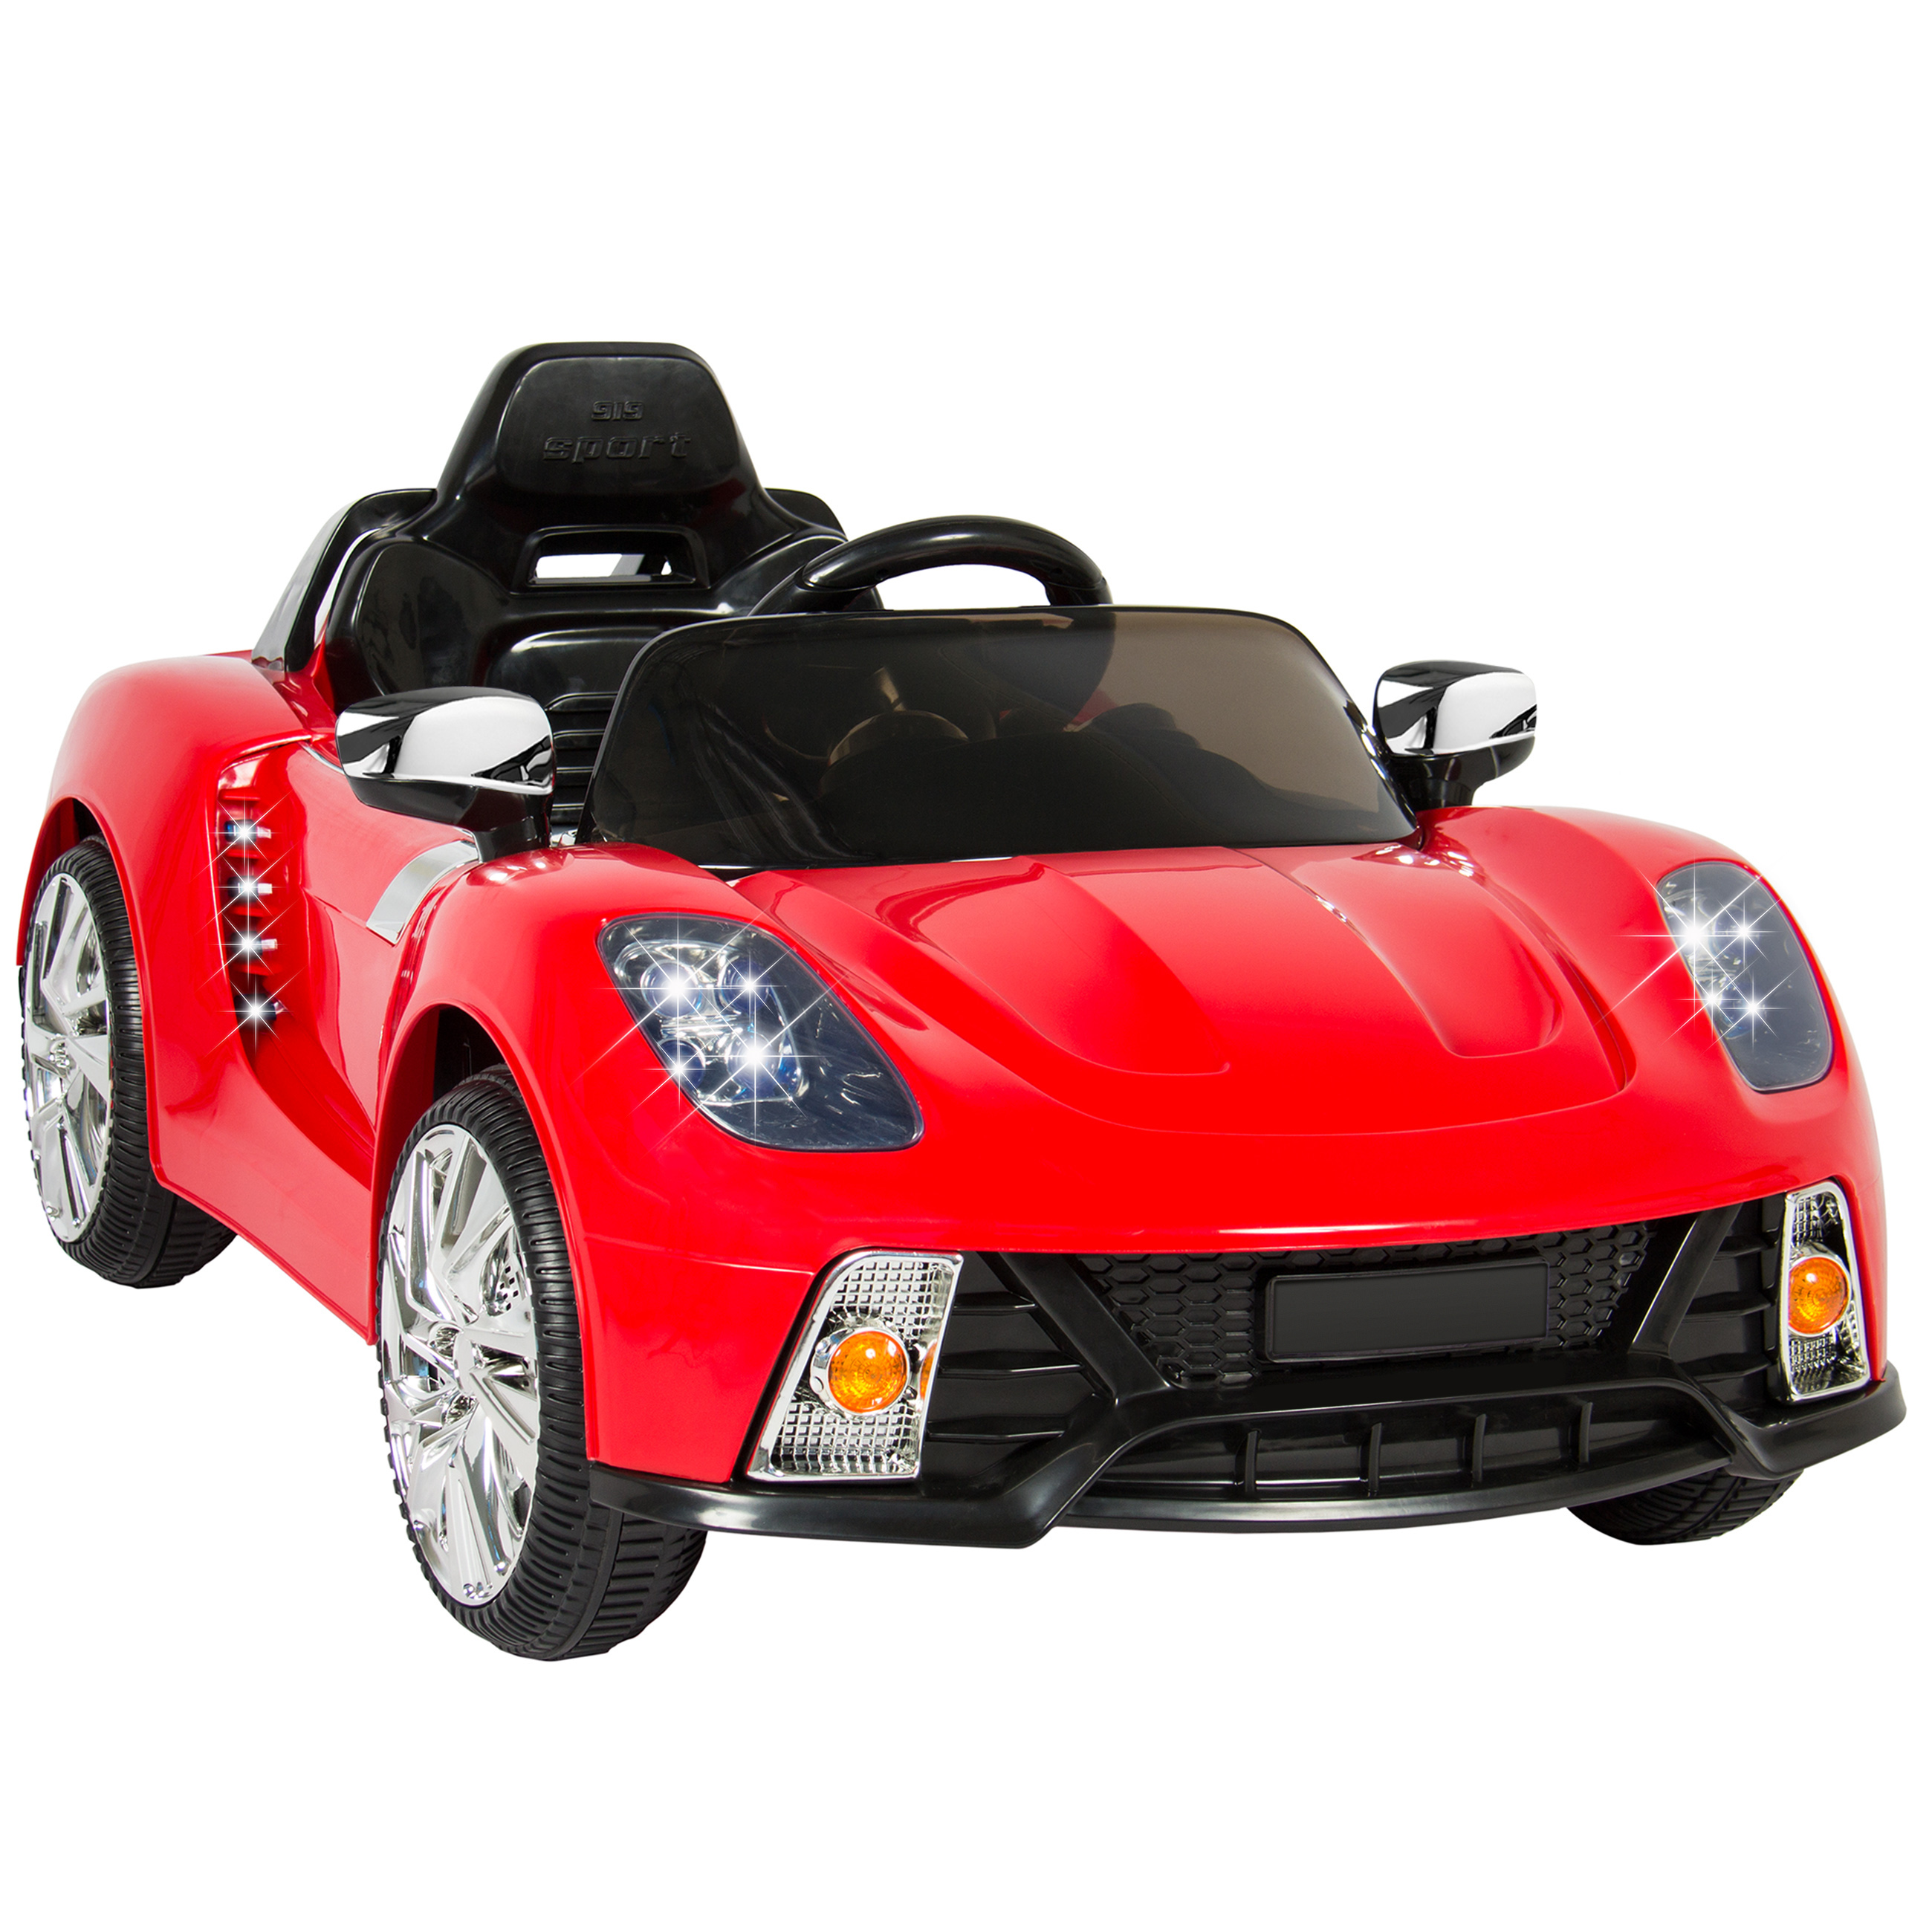 Ride On Cars Awesome Best Choice Products 12v Kids Battery Powered Remote Control